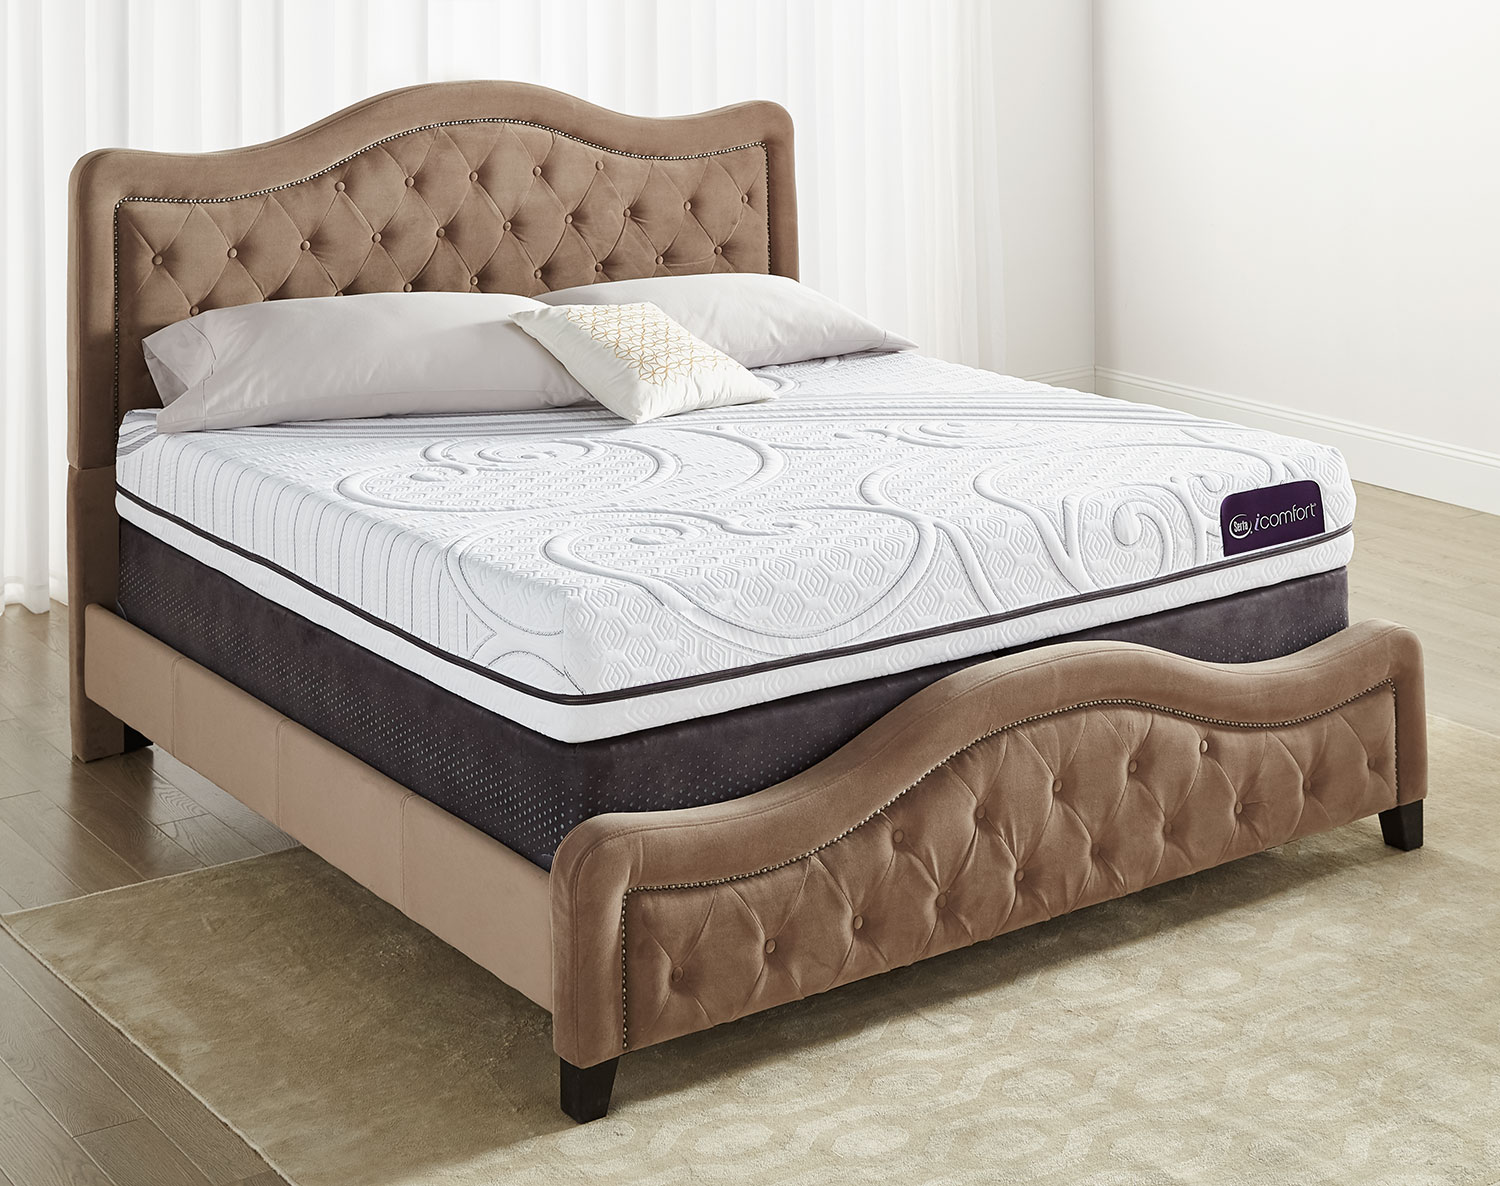 Serta iComfort Aura 2 Firm King Mattress Set